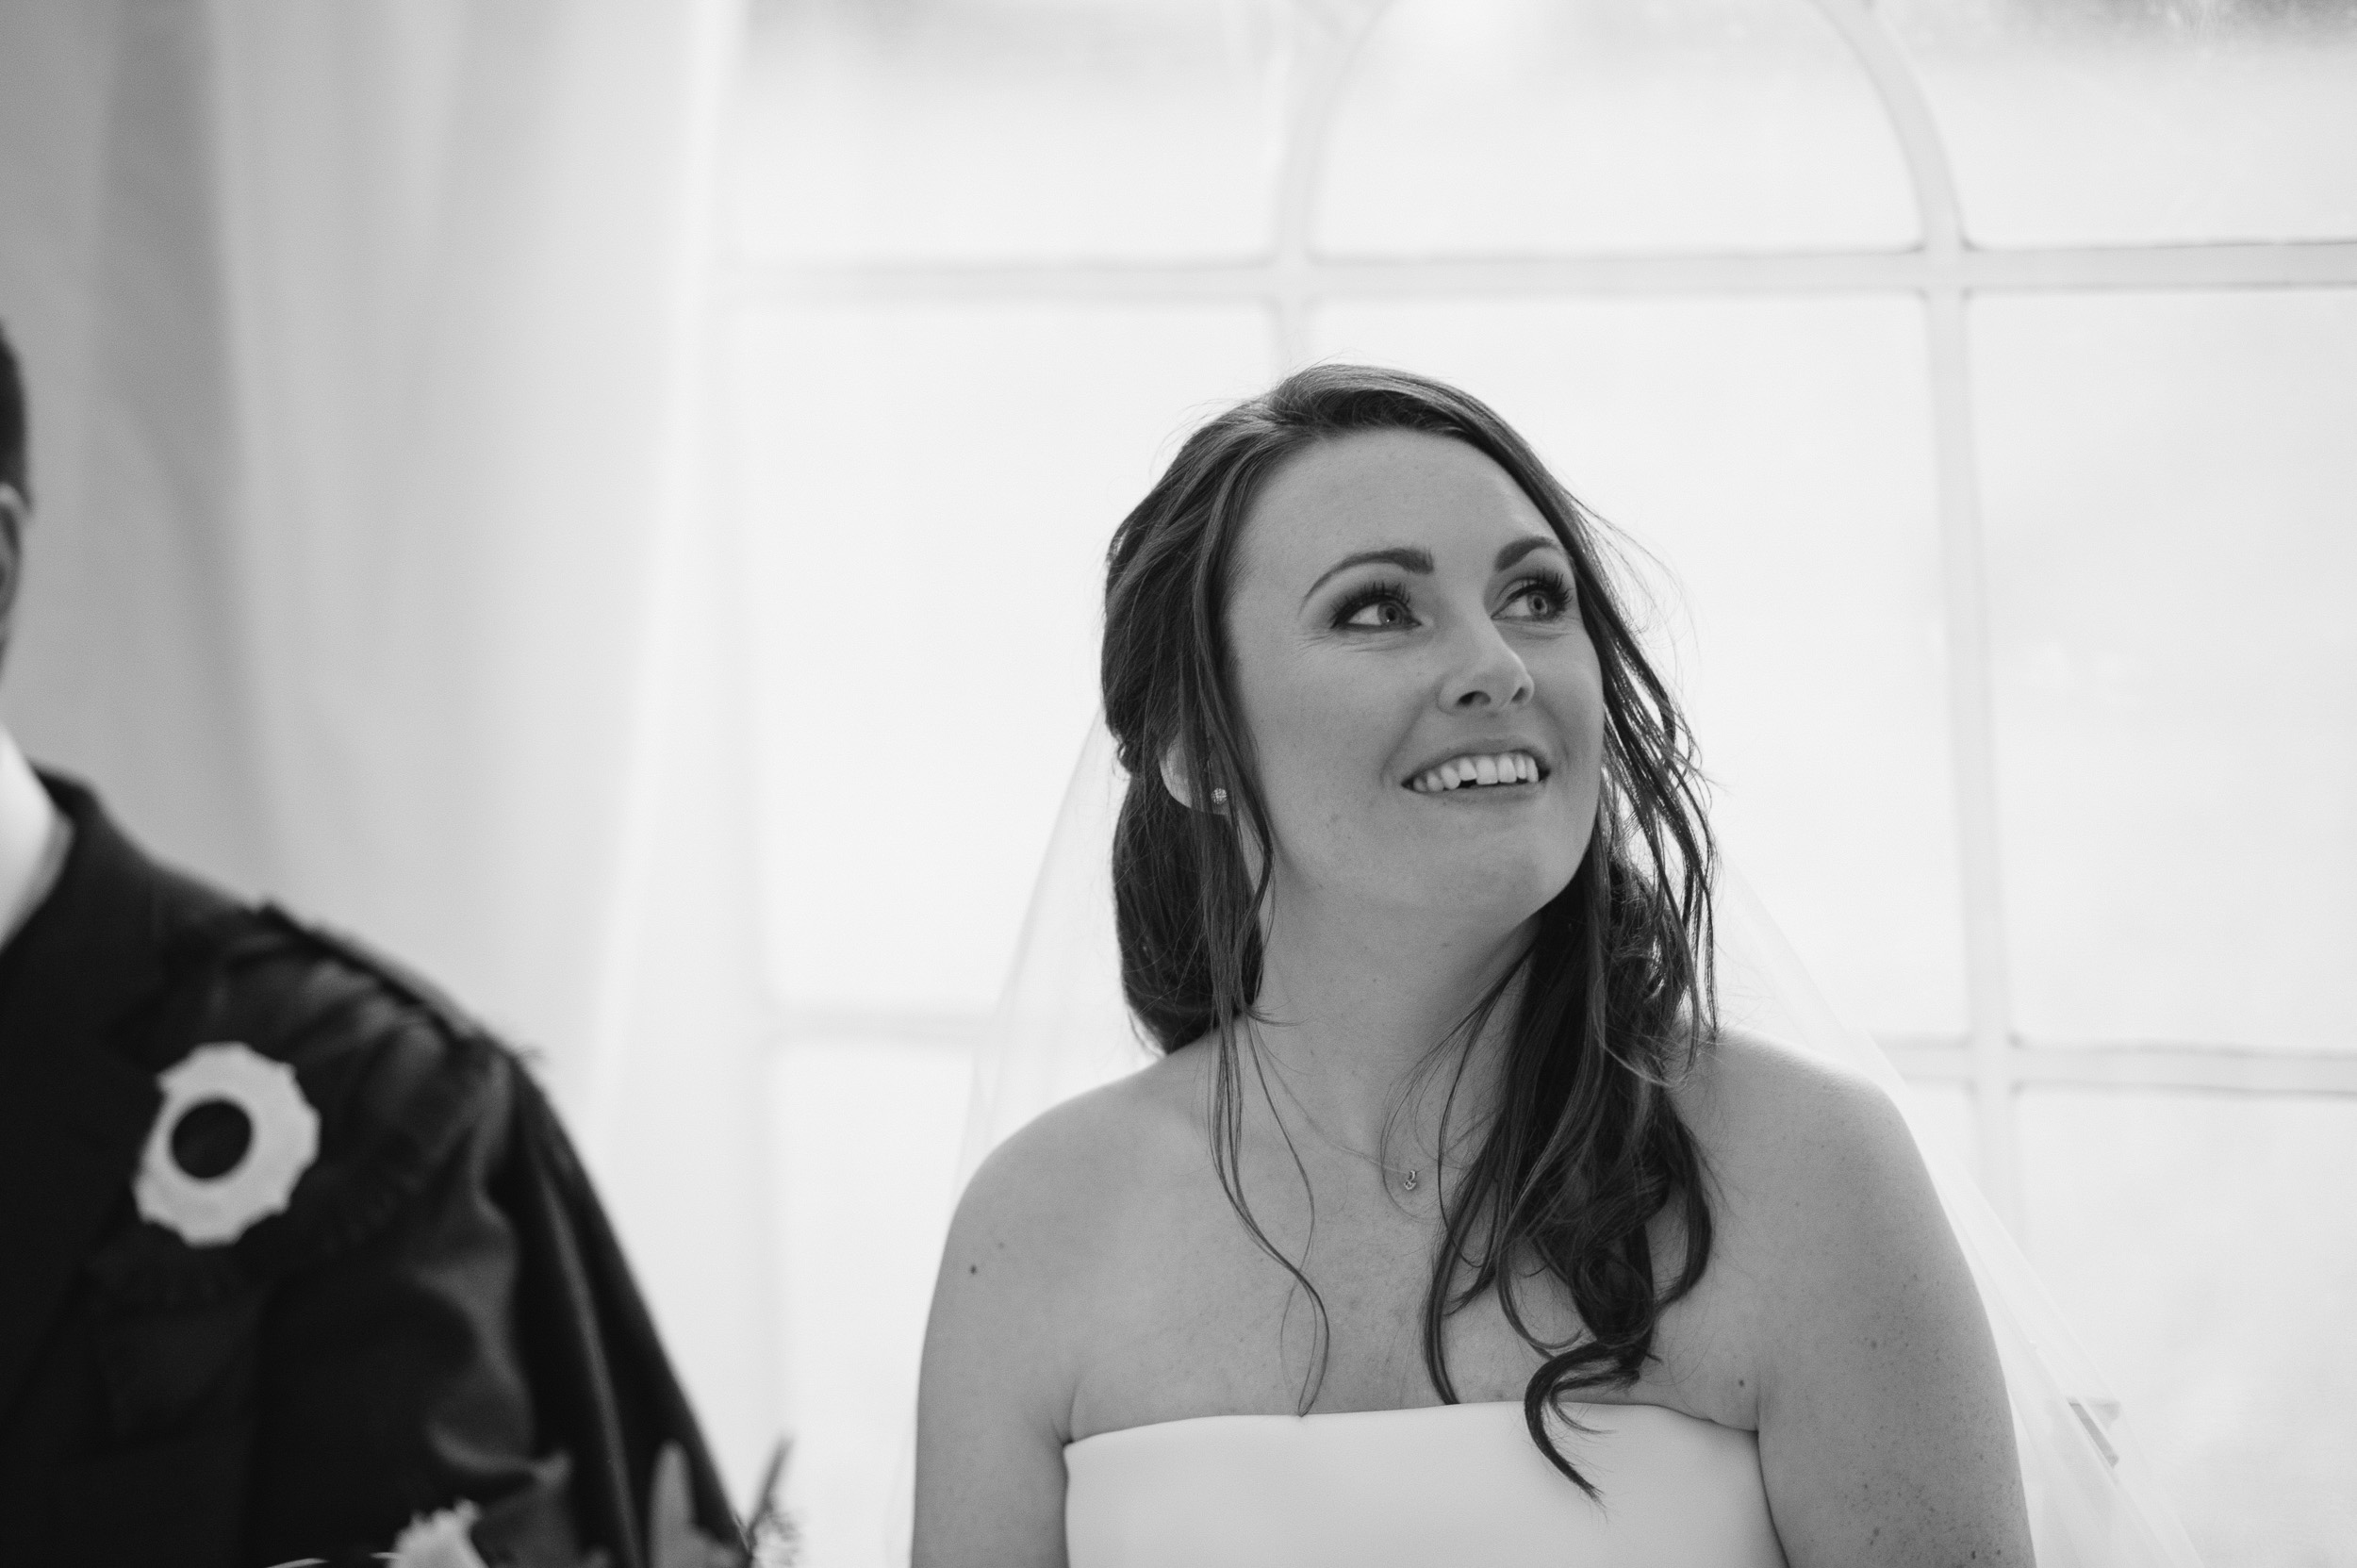 Bride reaction during speeches